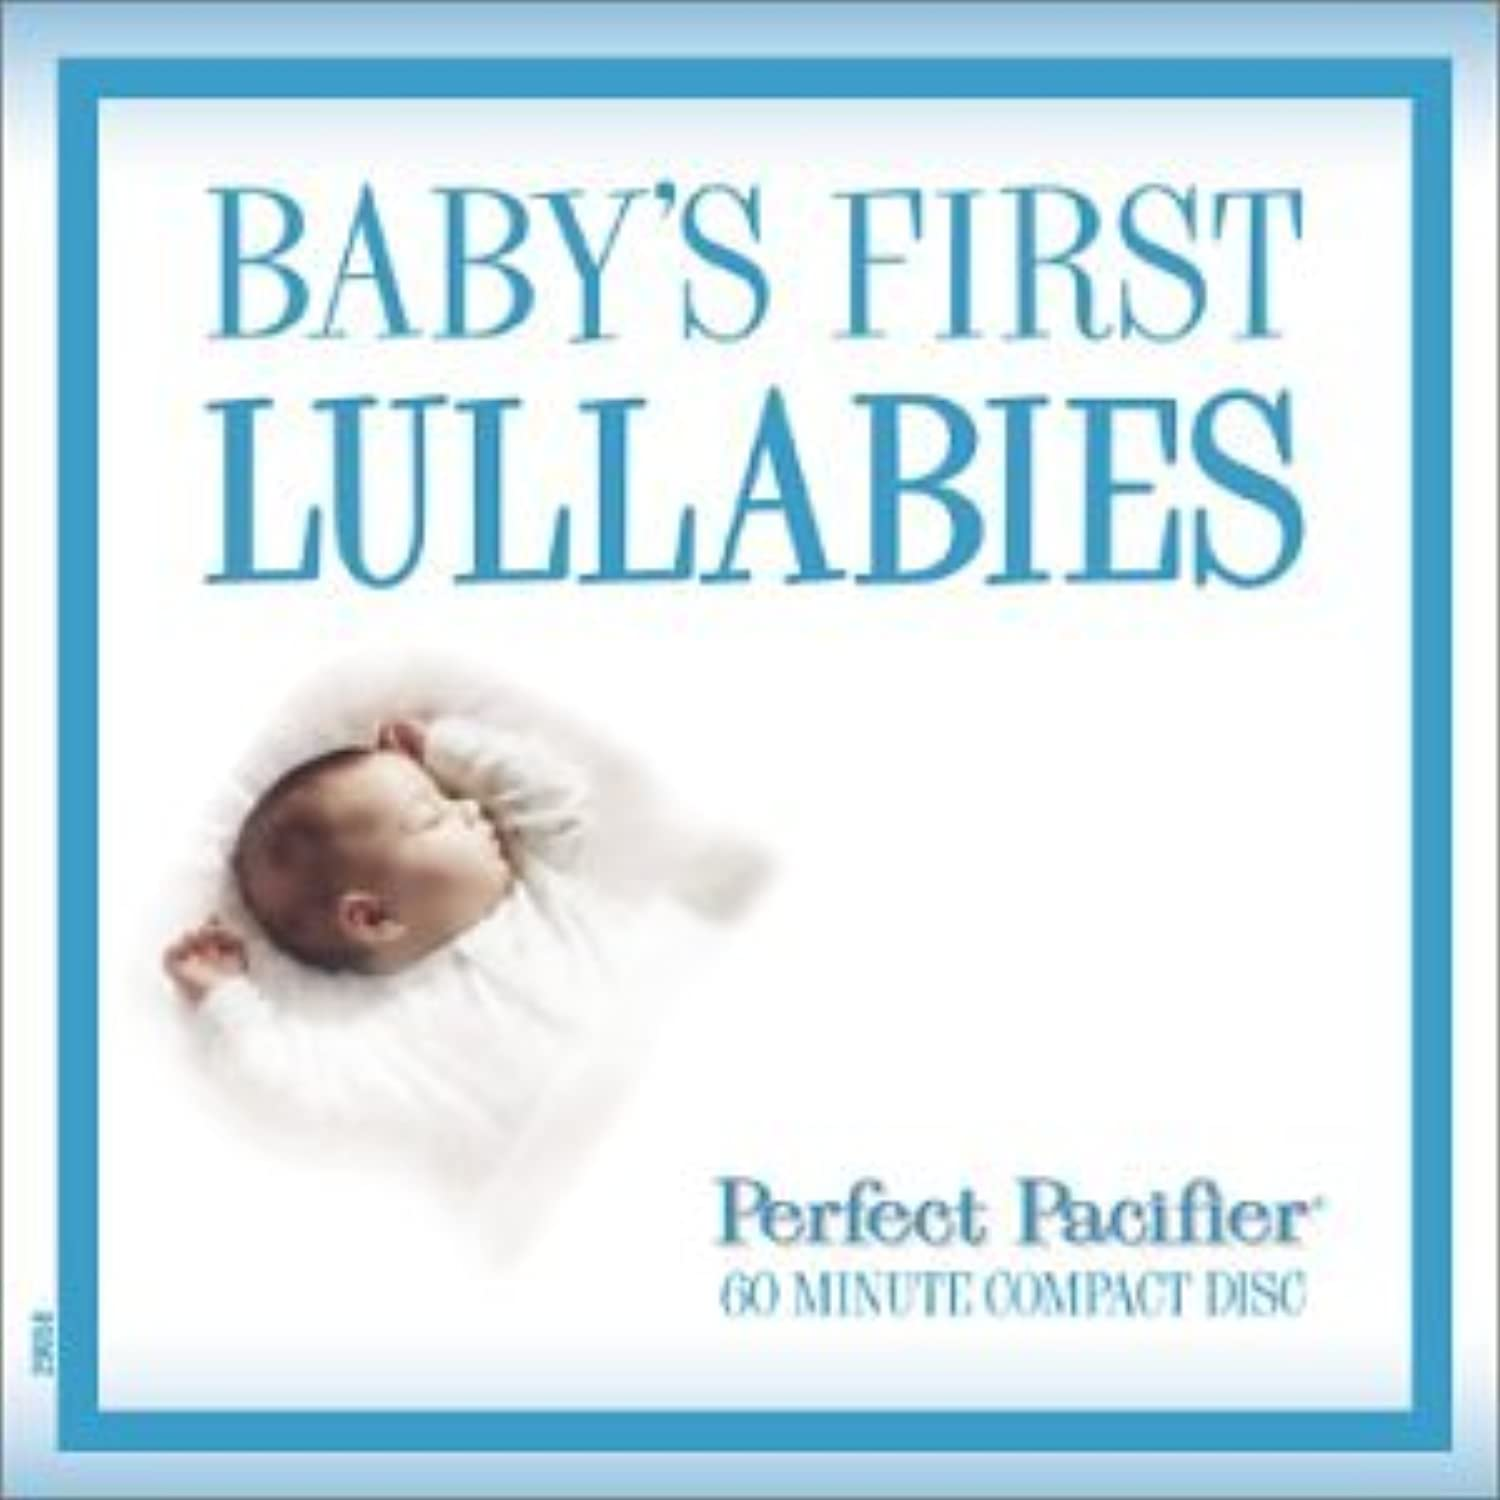 Perfect Pacifier - Baby's First Lullabies (US Import)